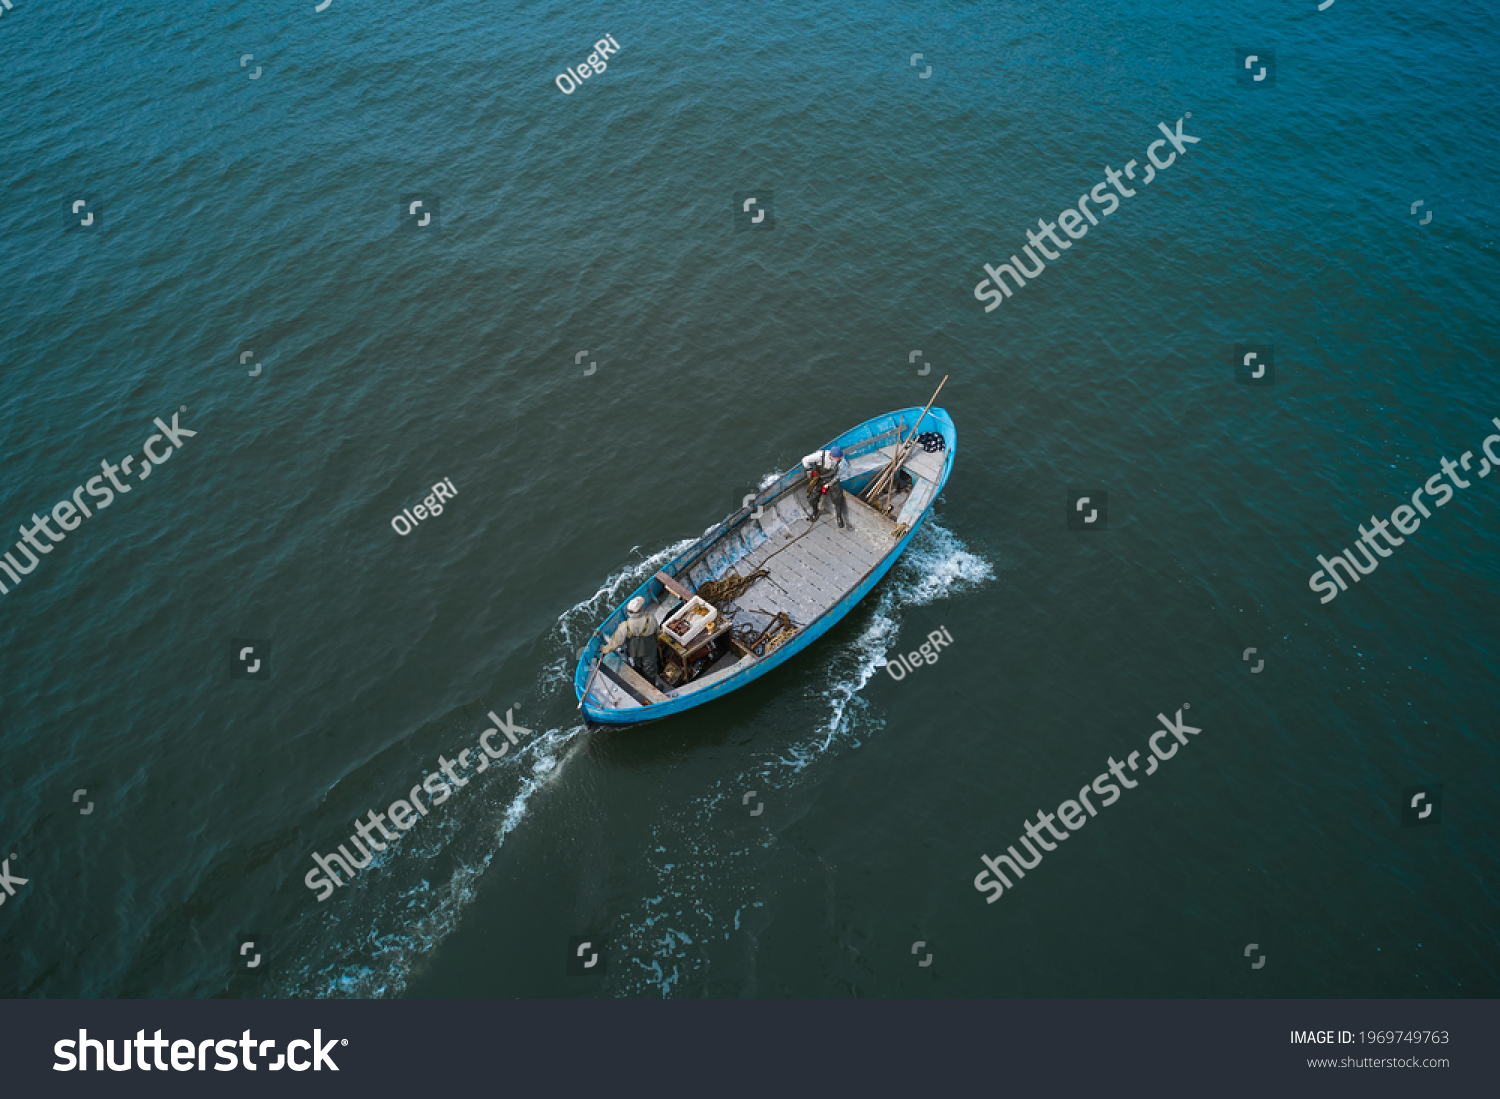 Fishing boats floating on the sea. Fishermans in boat. fishing boat sailing in open waters. man fishing on boat. sailing boat landscape #1969749763